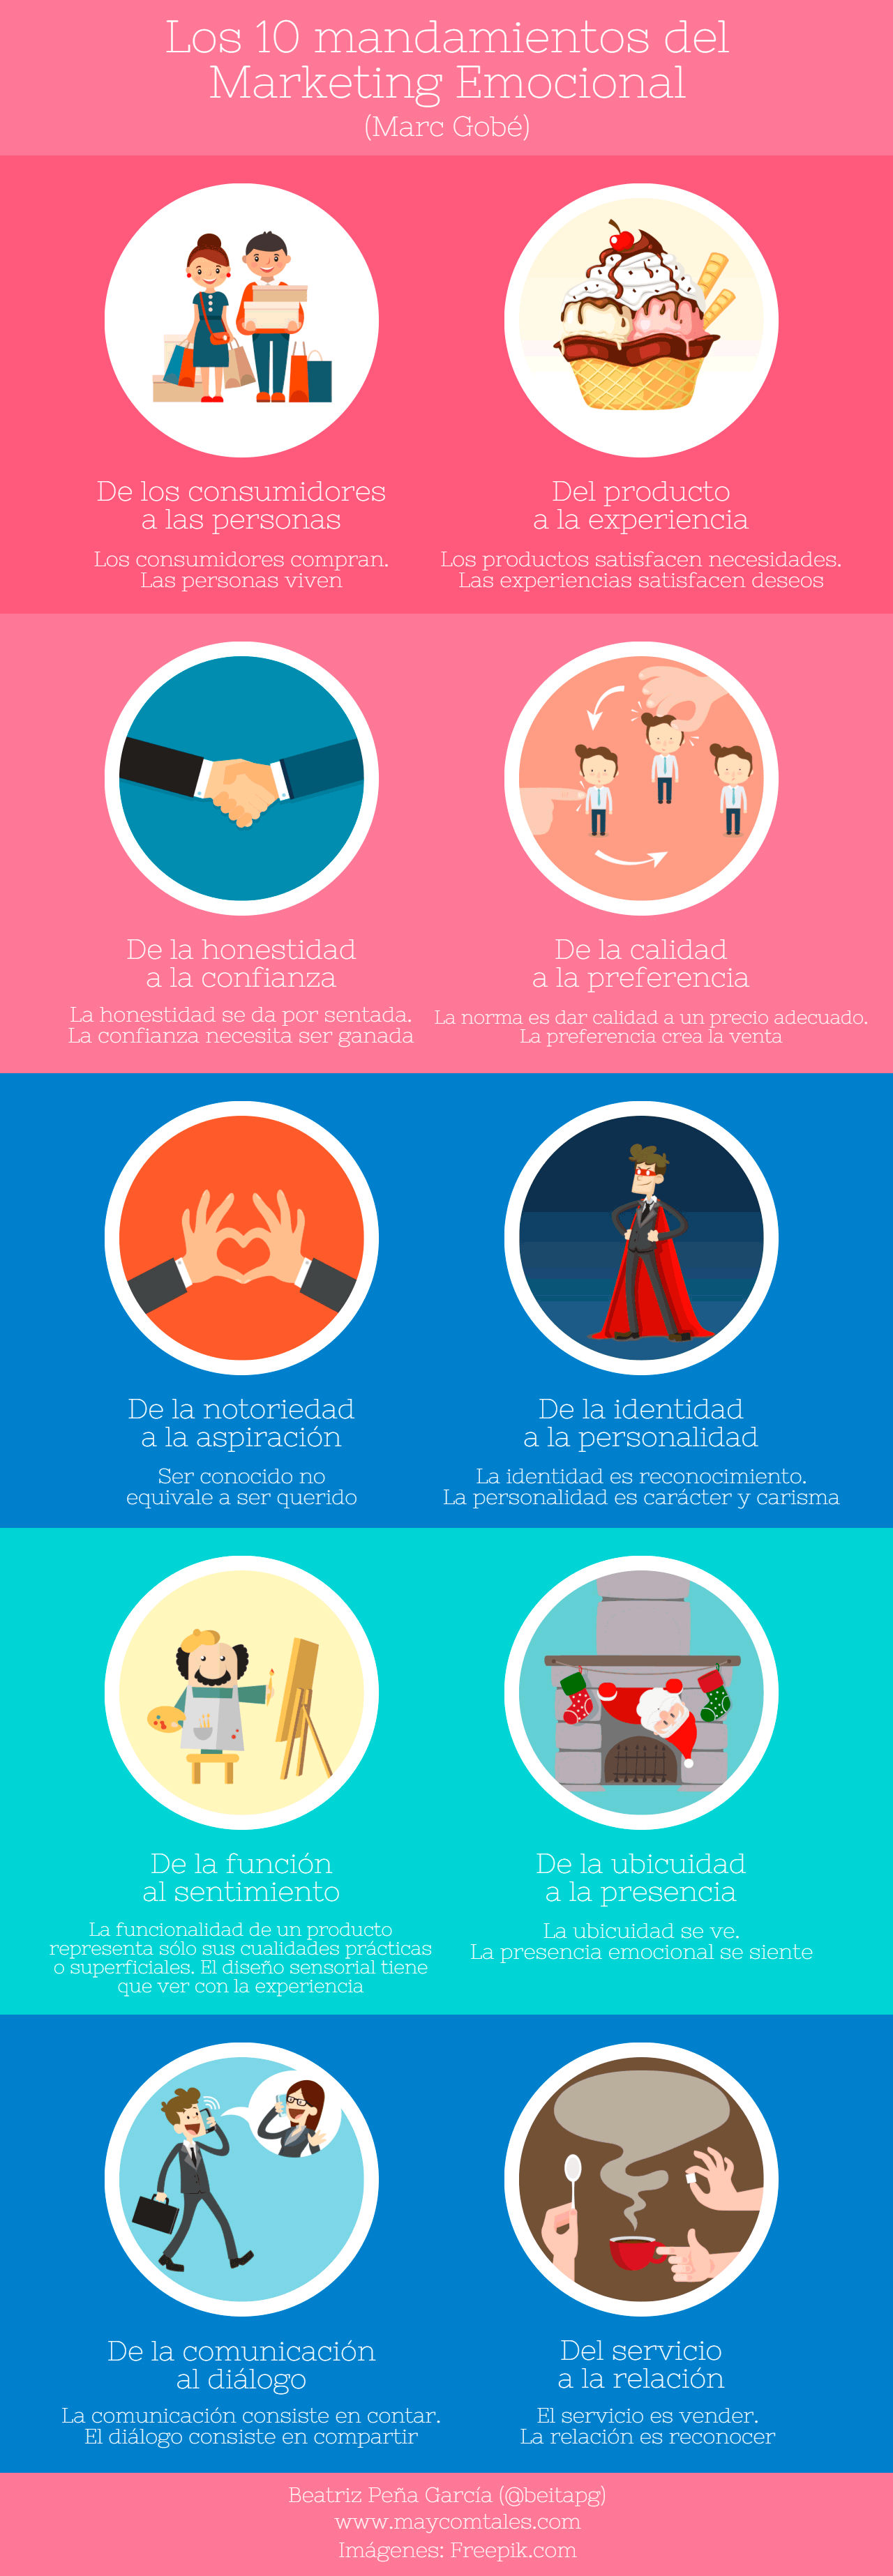 Infografía los 10 mandamientos del Marketing Emocional (Marc Gobé)